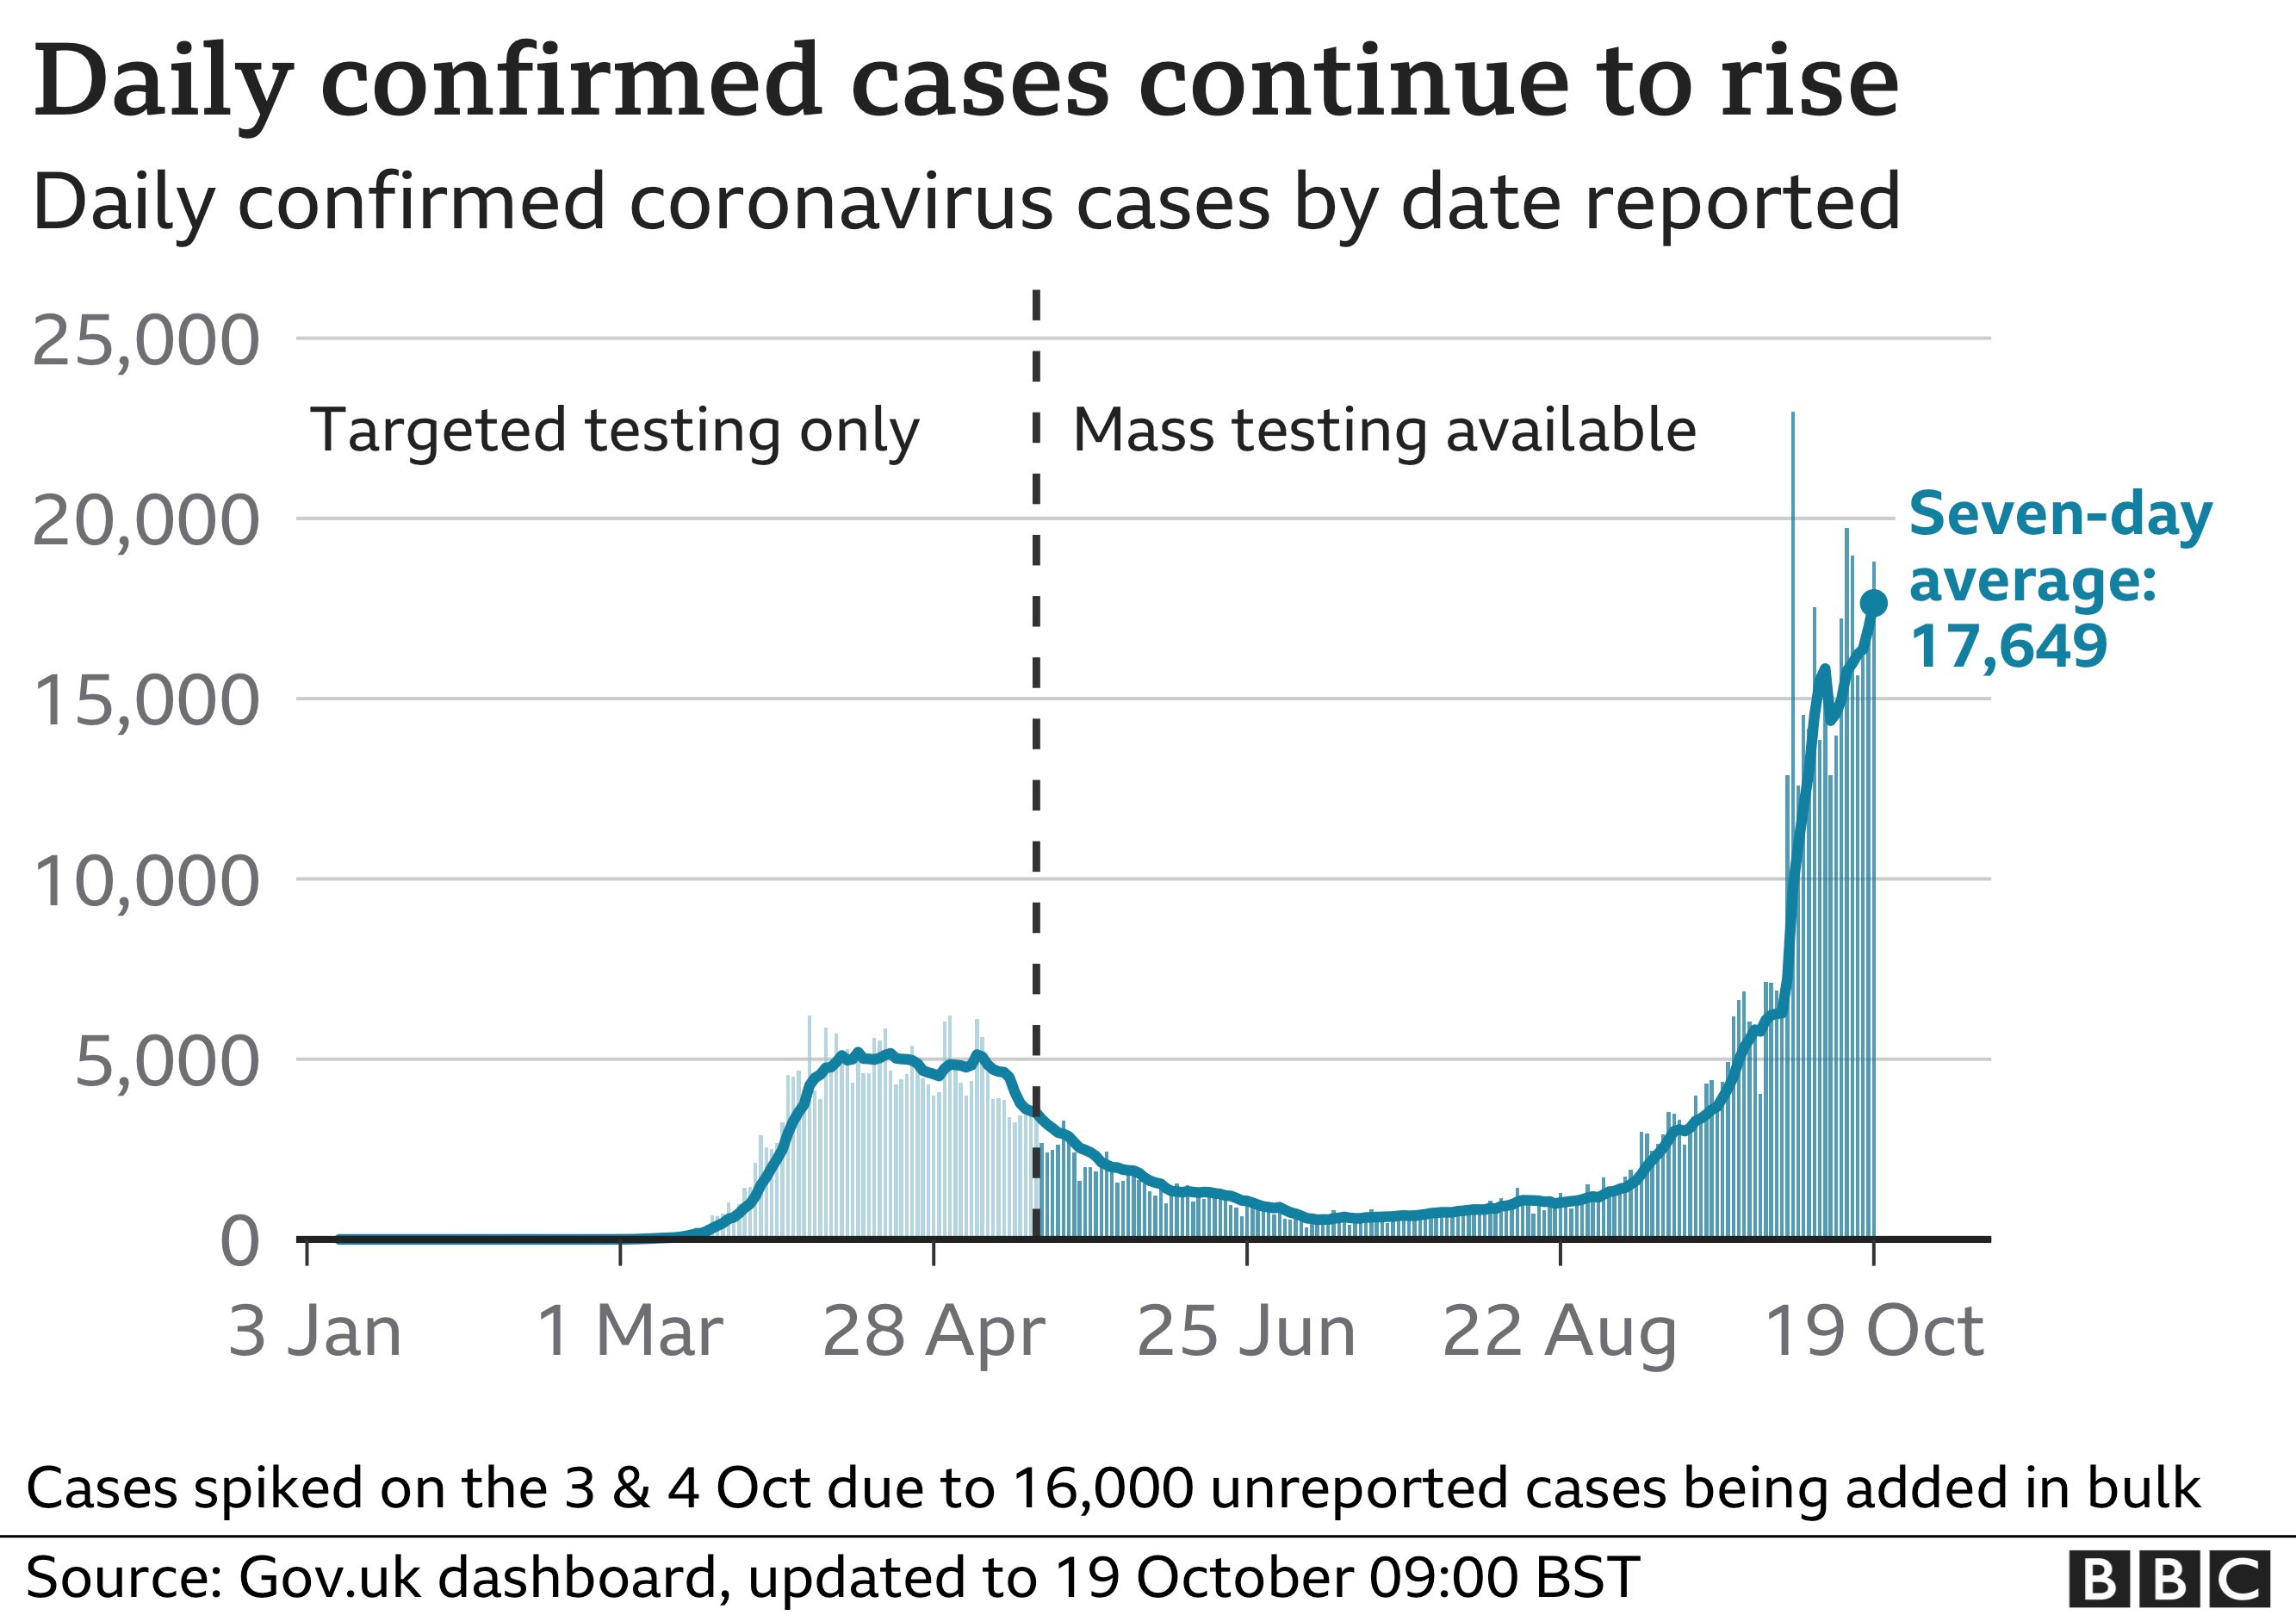 Chart shows confirmed cases are continuing to rise quickly